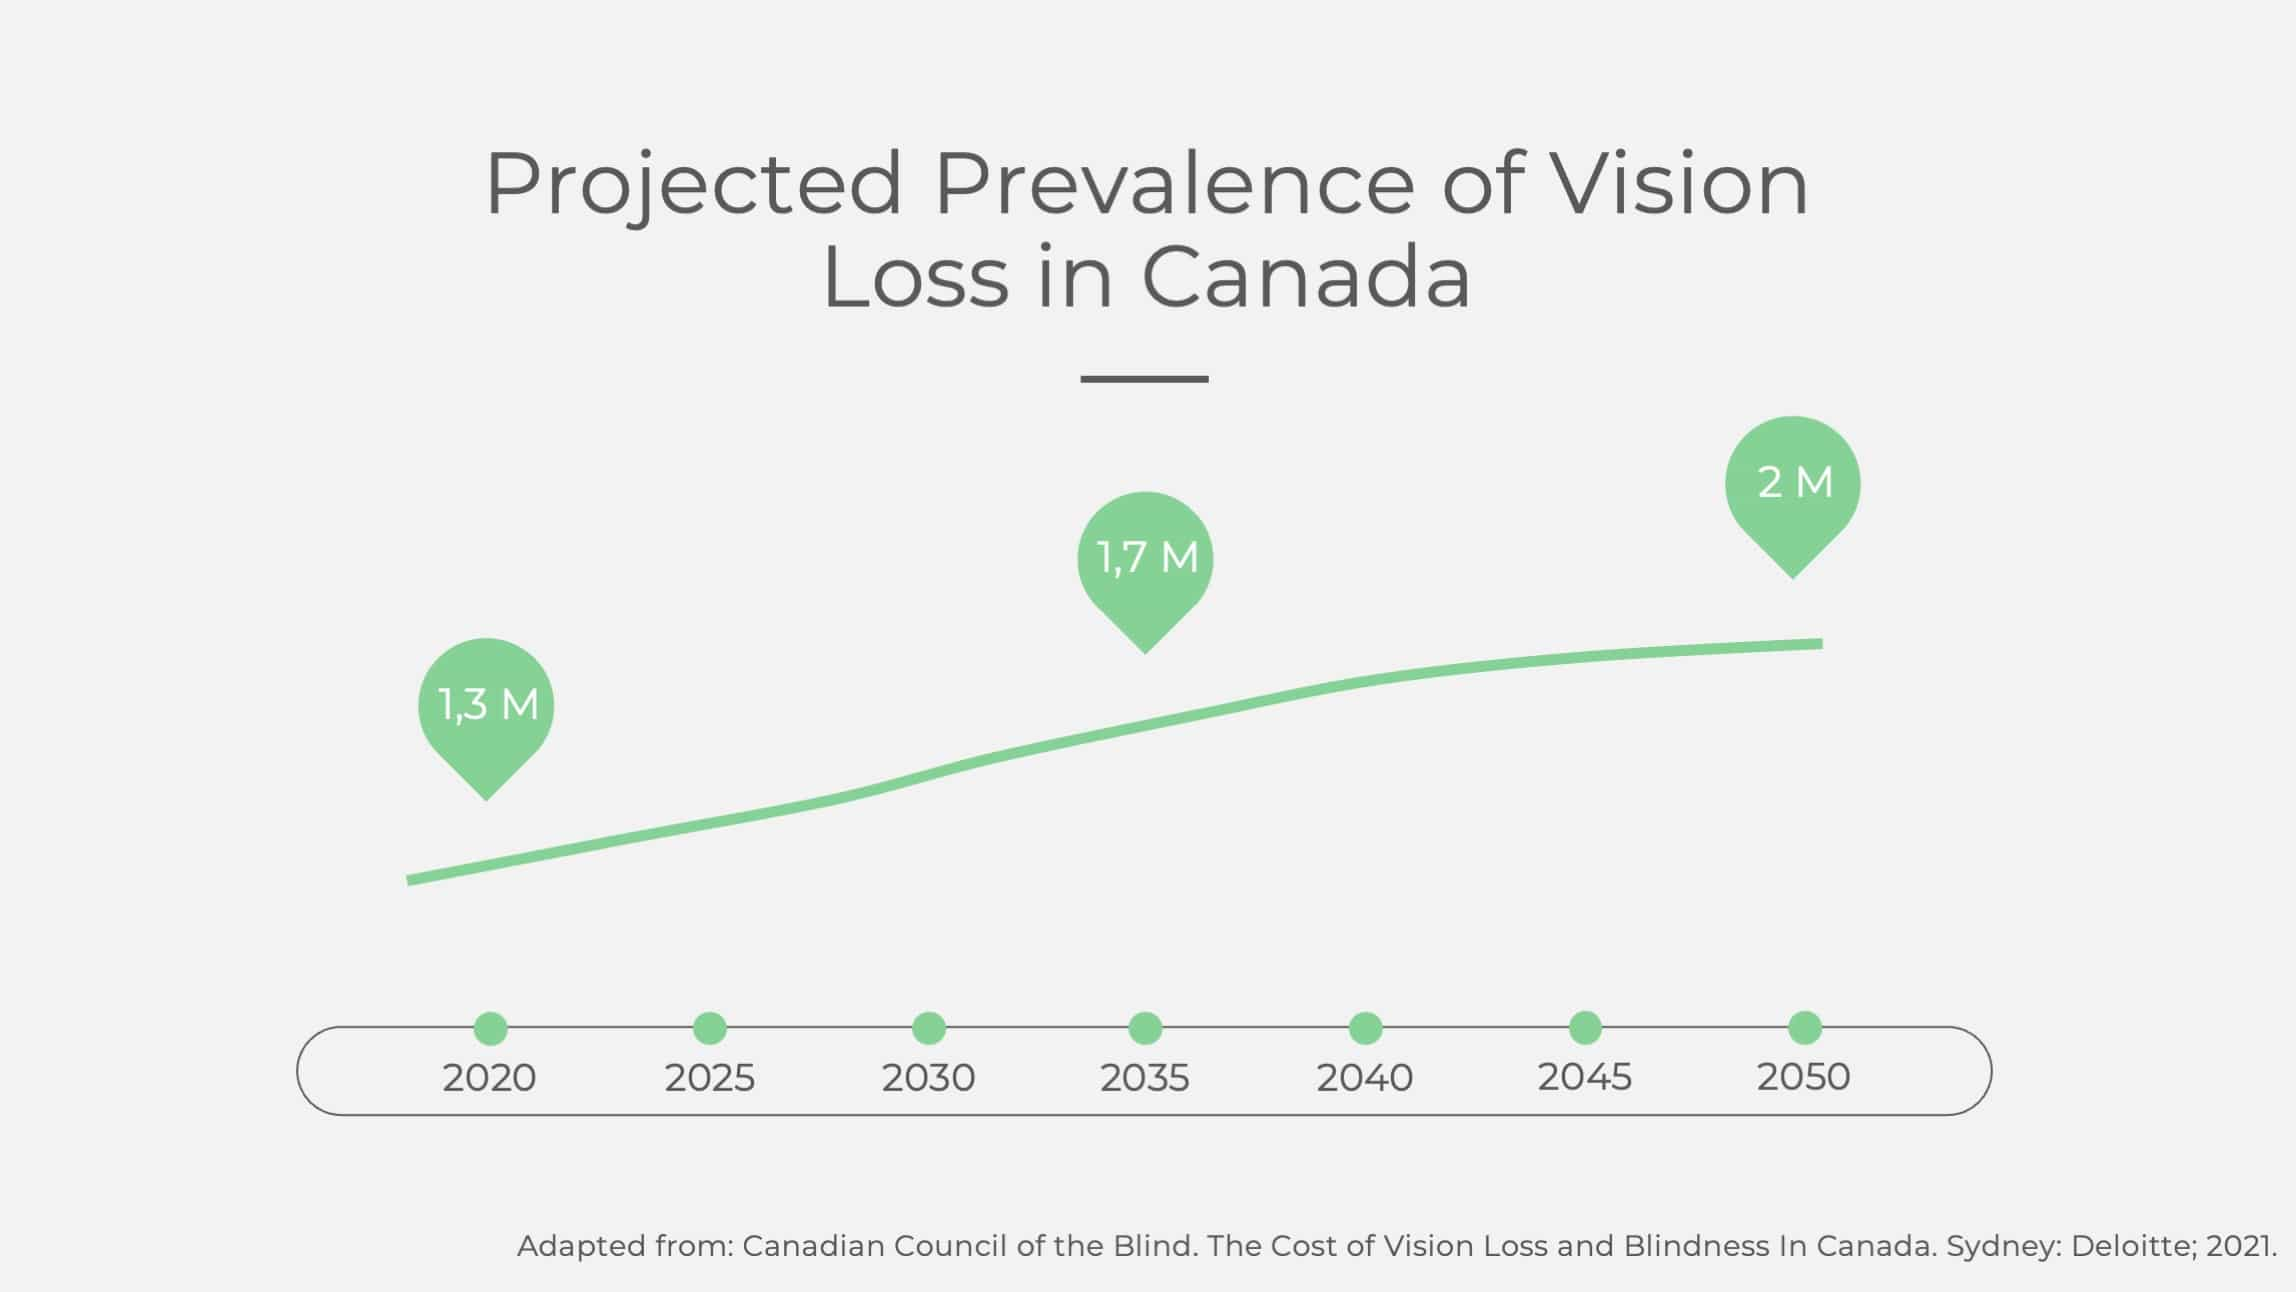 Projected Prevalence of Vision Loss in Canada